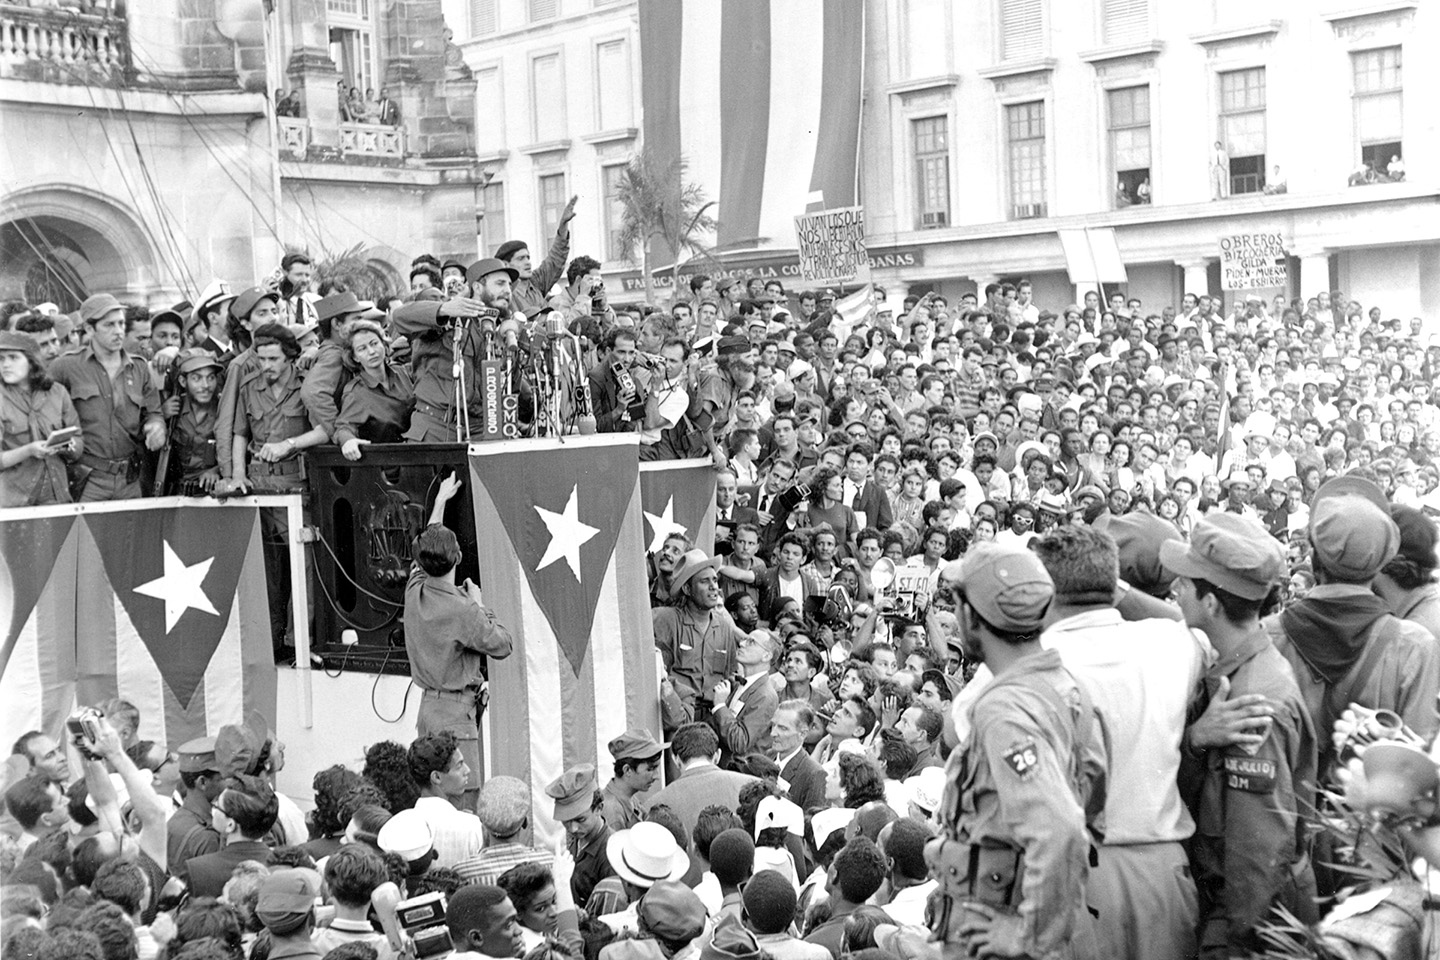 an analysis of peasantry in the cuban revolution Fidel castro and the cuban revolution  the movement reached out to the local peasantry promis-ing land reform, education, and democracy literacy classes were .